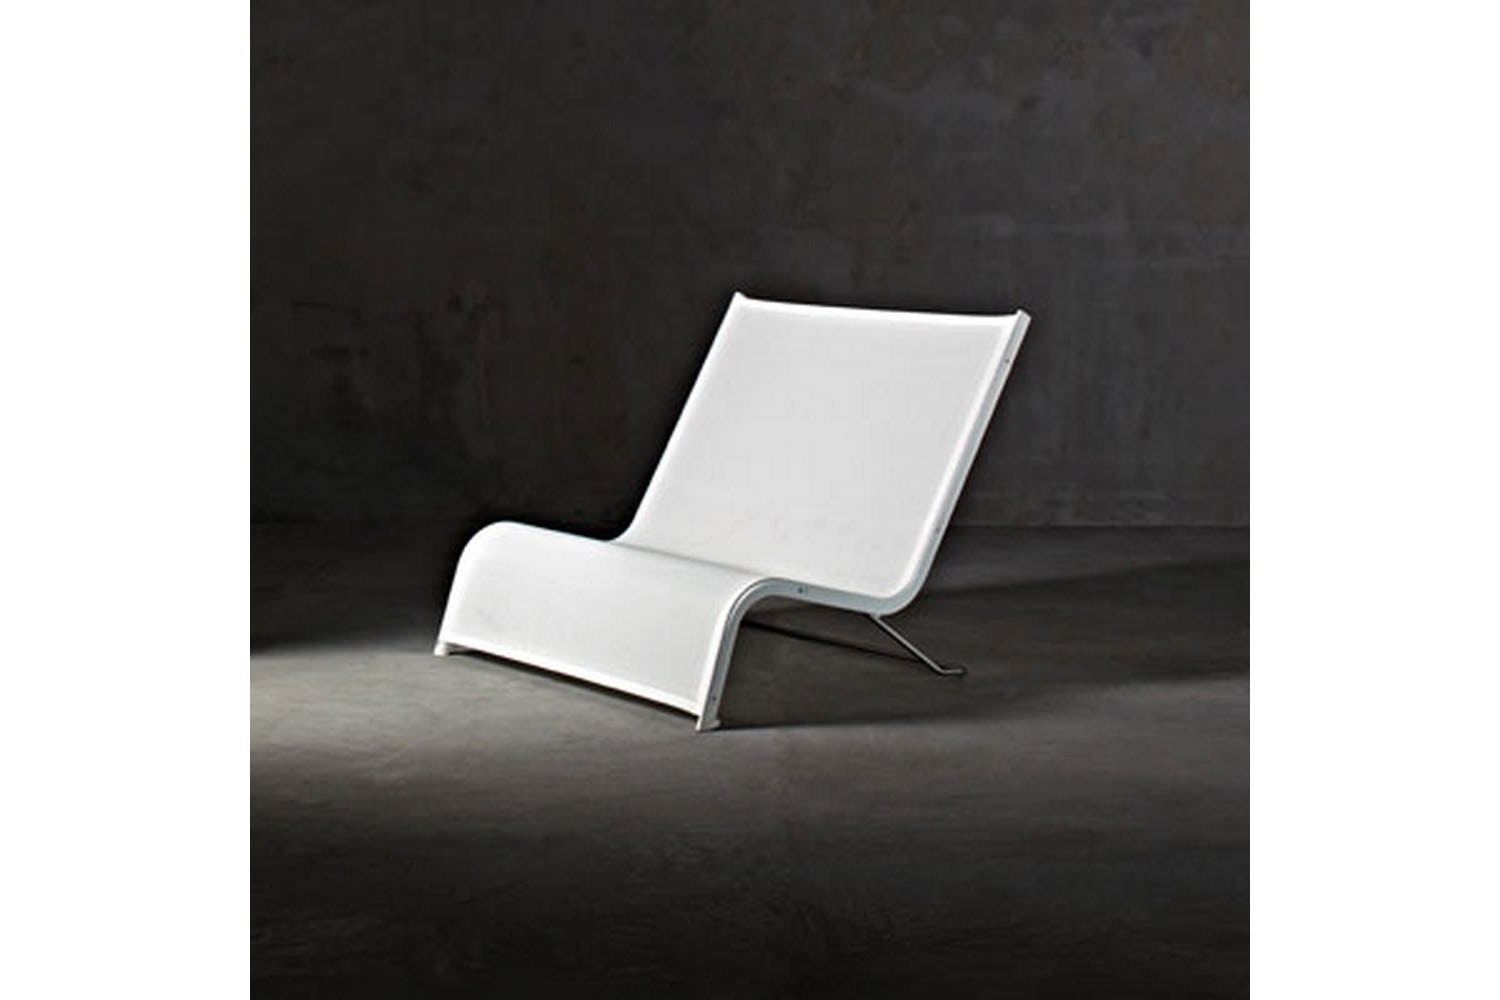 Lazy Deckchair 2 Chaise by Michel Boucquillon for Serralunga